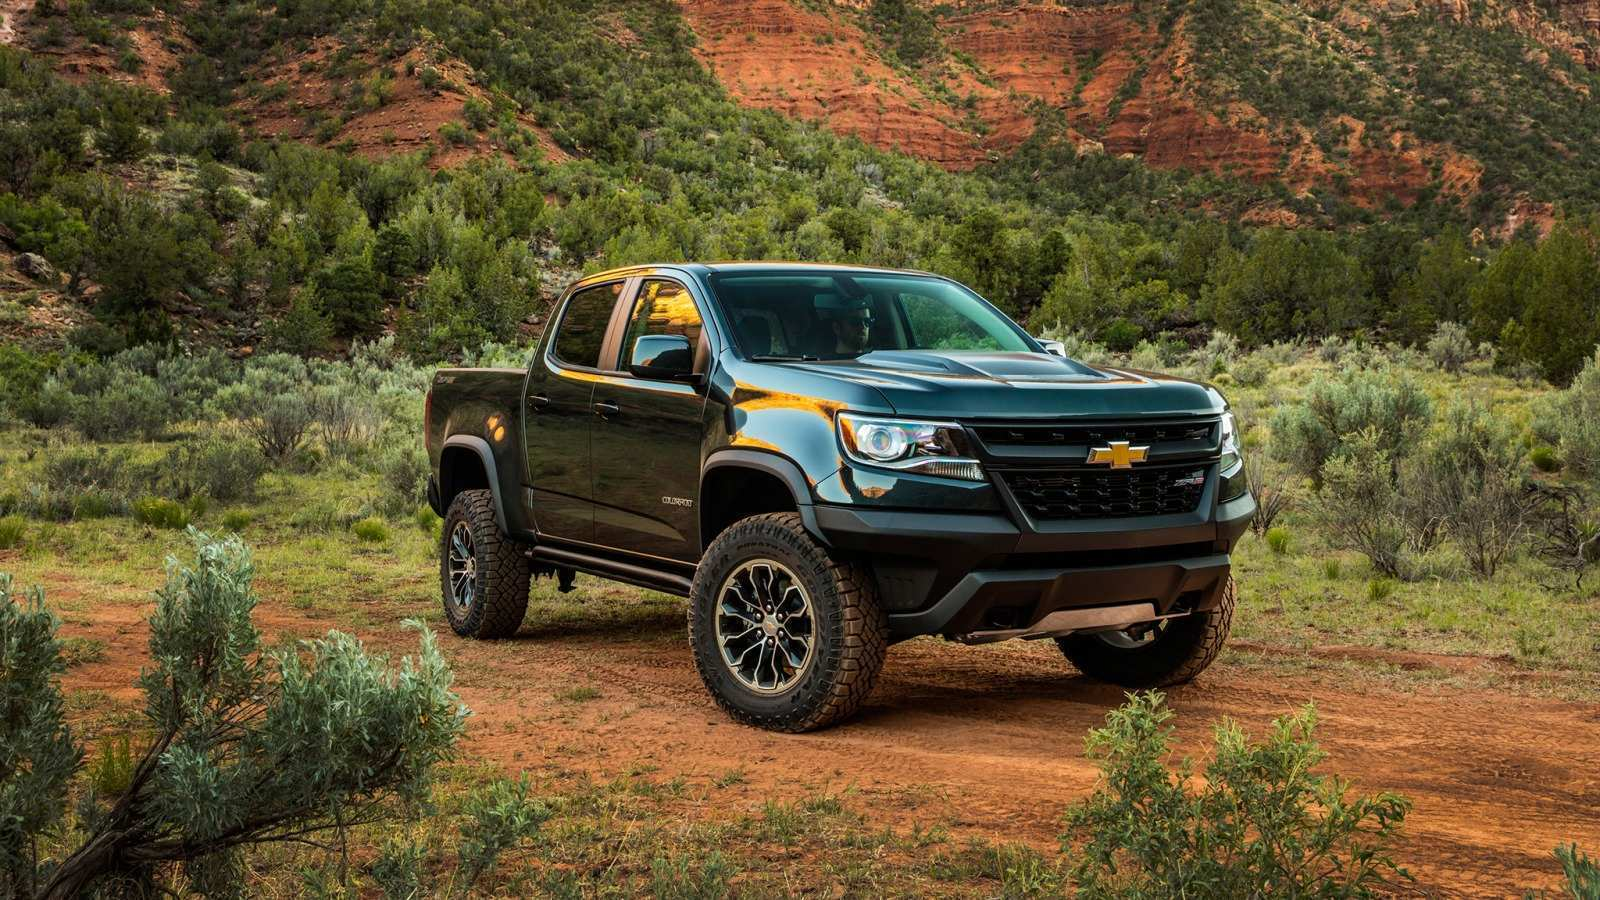 64 All New 2020 Chevrolet Colorado Z72 Images